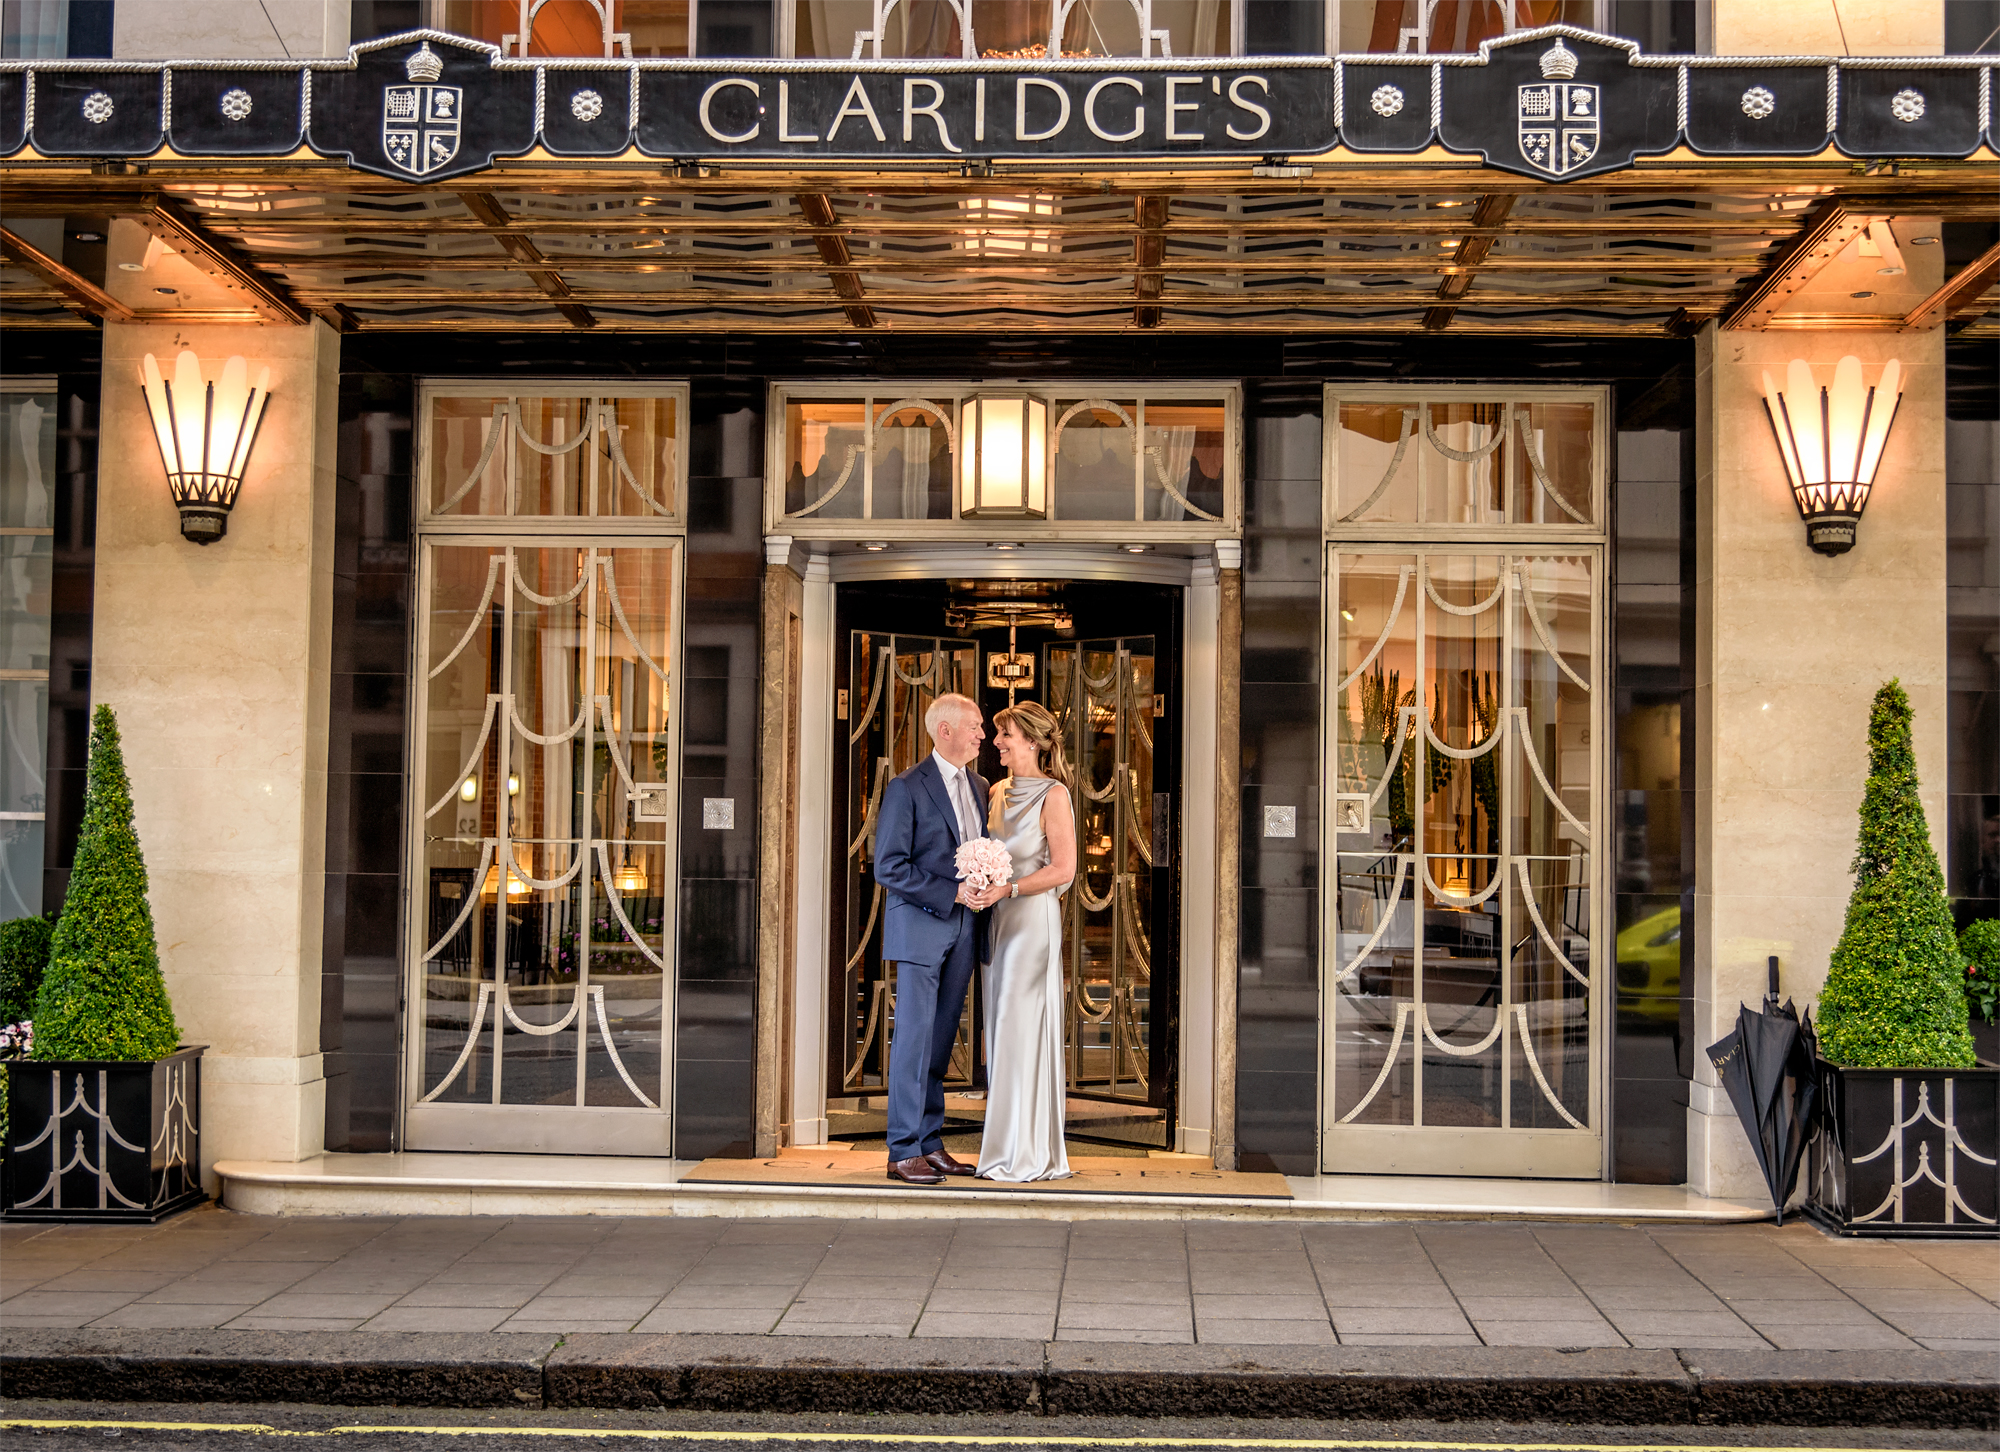 claridges-wedding-bride-and-groom-at-front-entrance